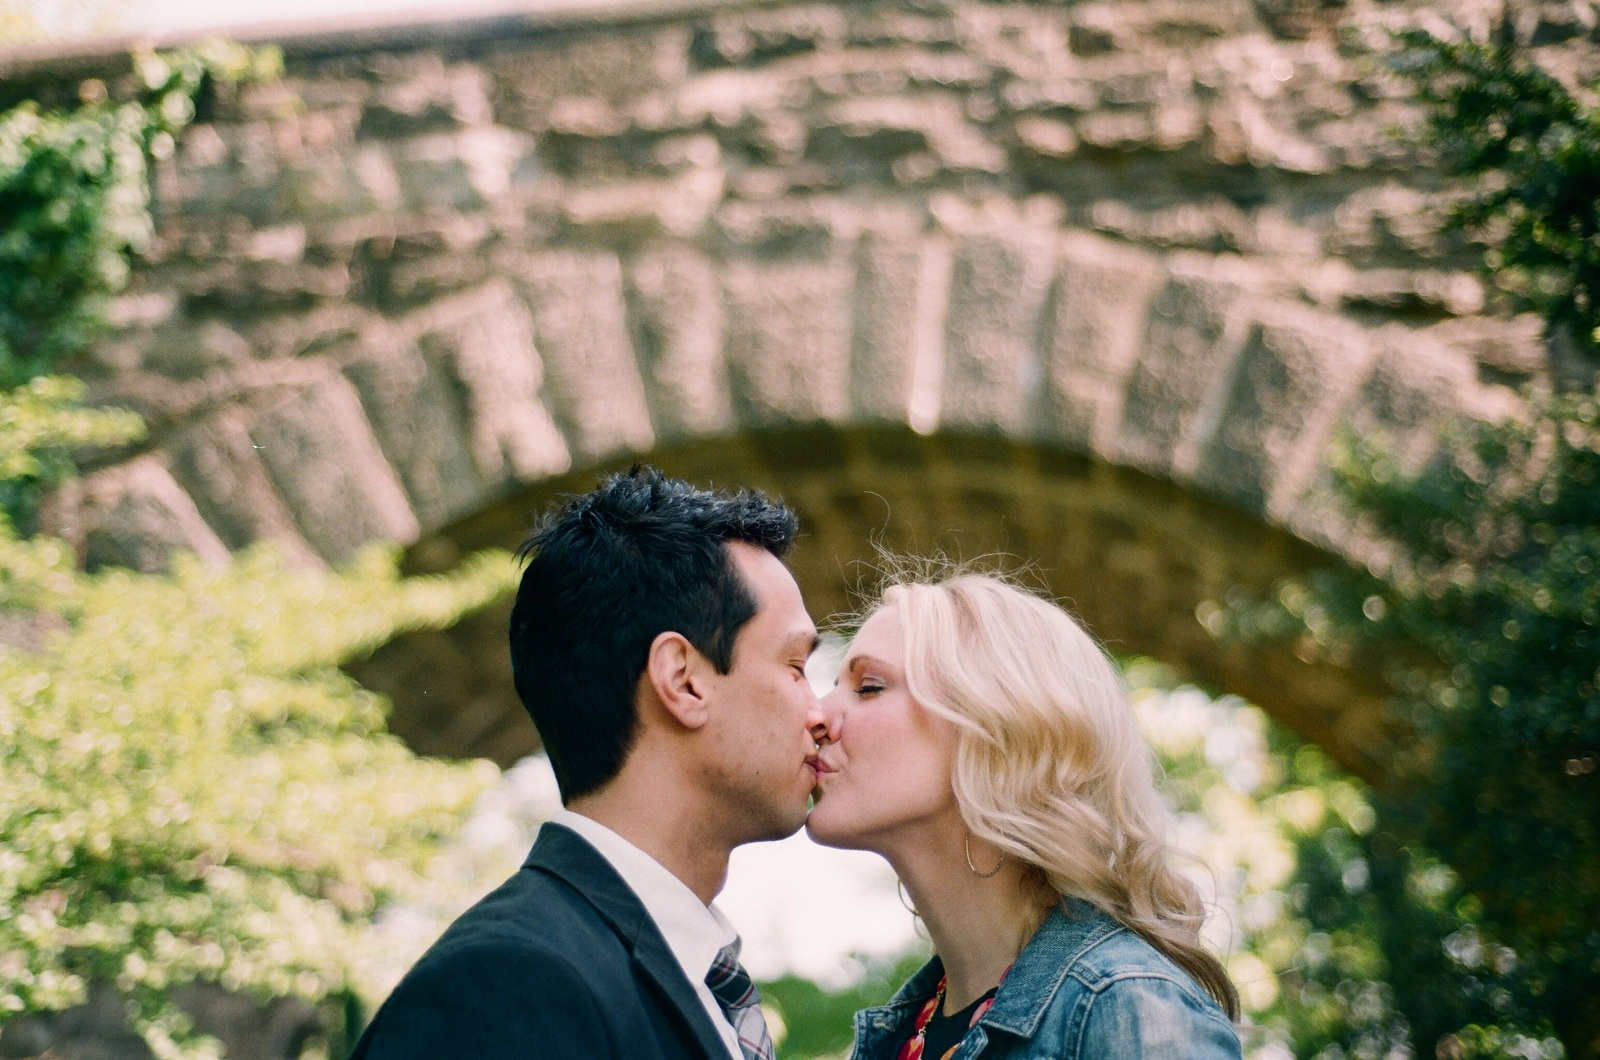 engaged couple kissing under arch fort tryon park by wendy g